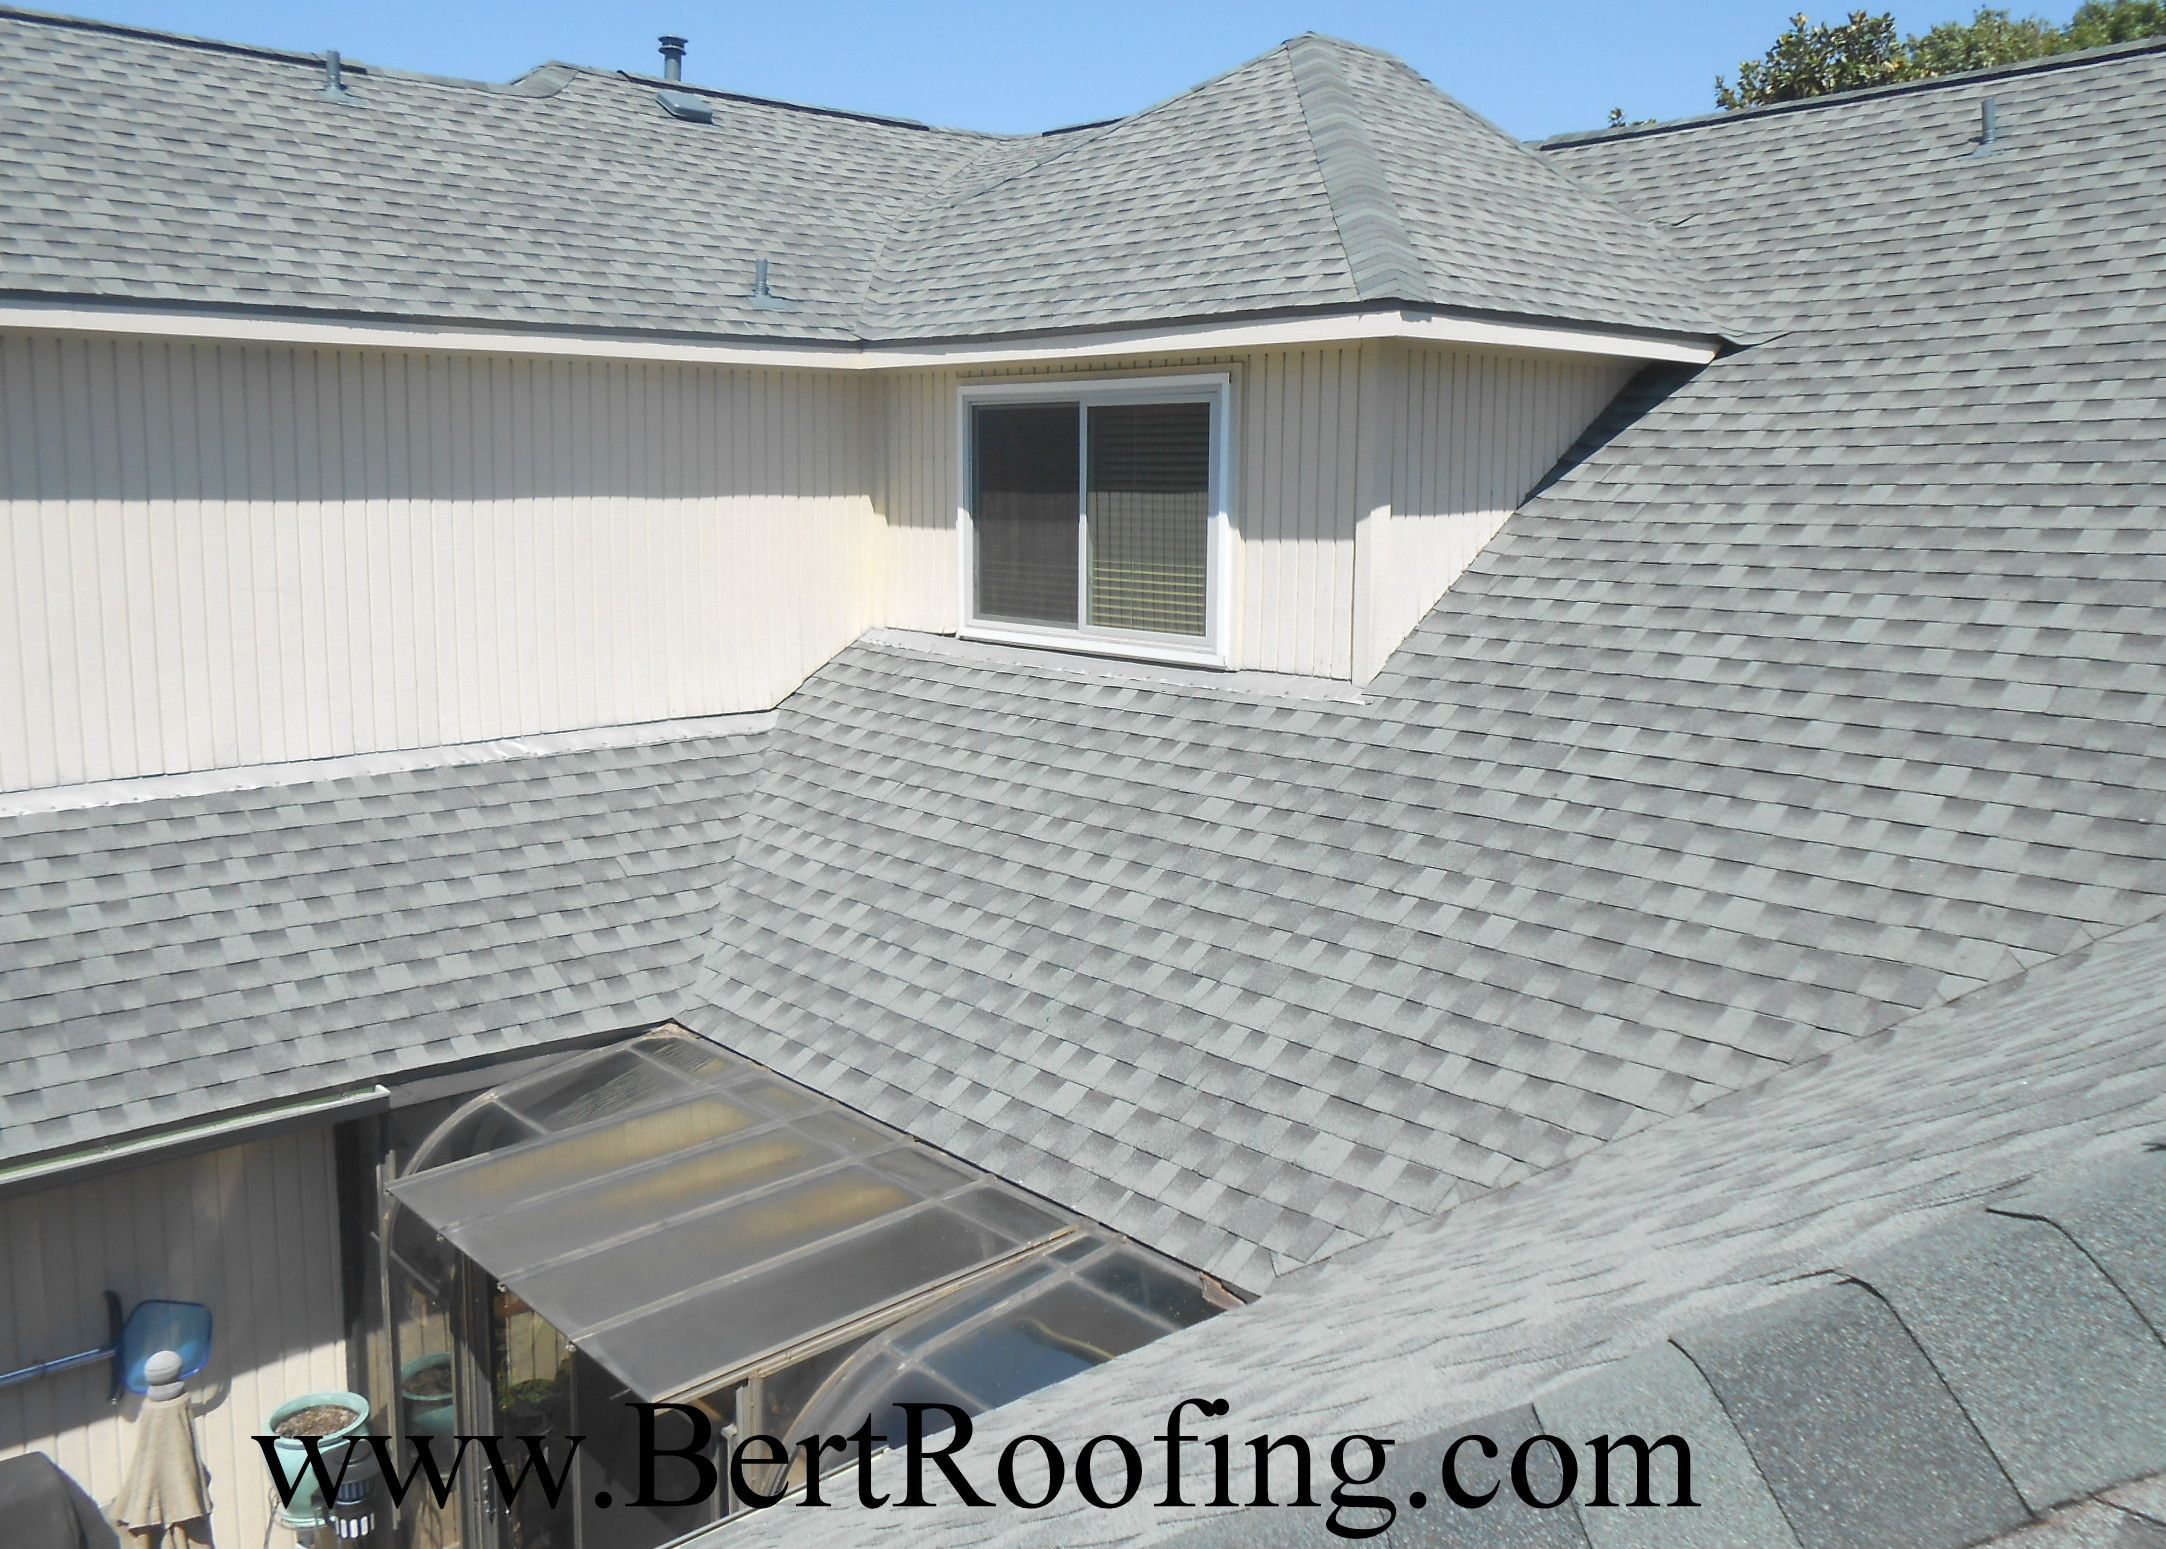 Gaf Armorshield Ii Class 4 Impact Resistant Composition Shingle Color Slate Installed By Bert Roofing Inc Of Dallas I Roofing Roofing Contractors Shingling